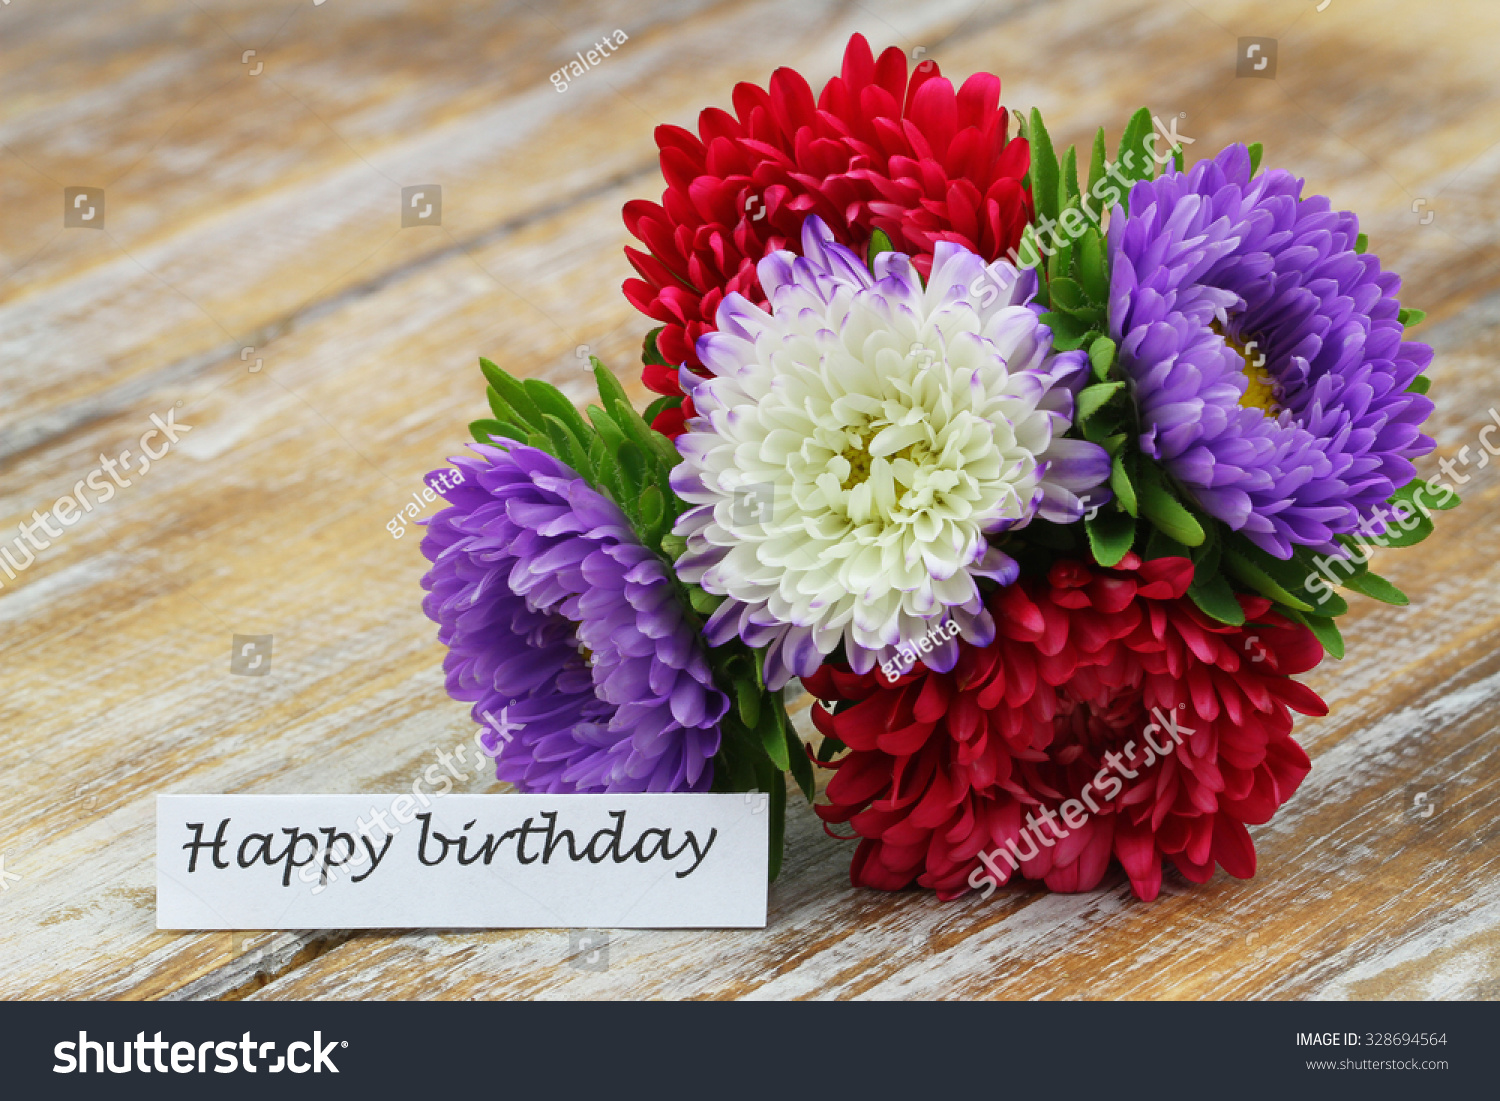 Happy birthday card colorful aster flower stock photo edit now happy birthday card with colorful aster flower bouquet on rustic wooden surface izmirmasajfo